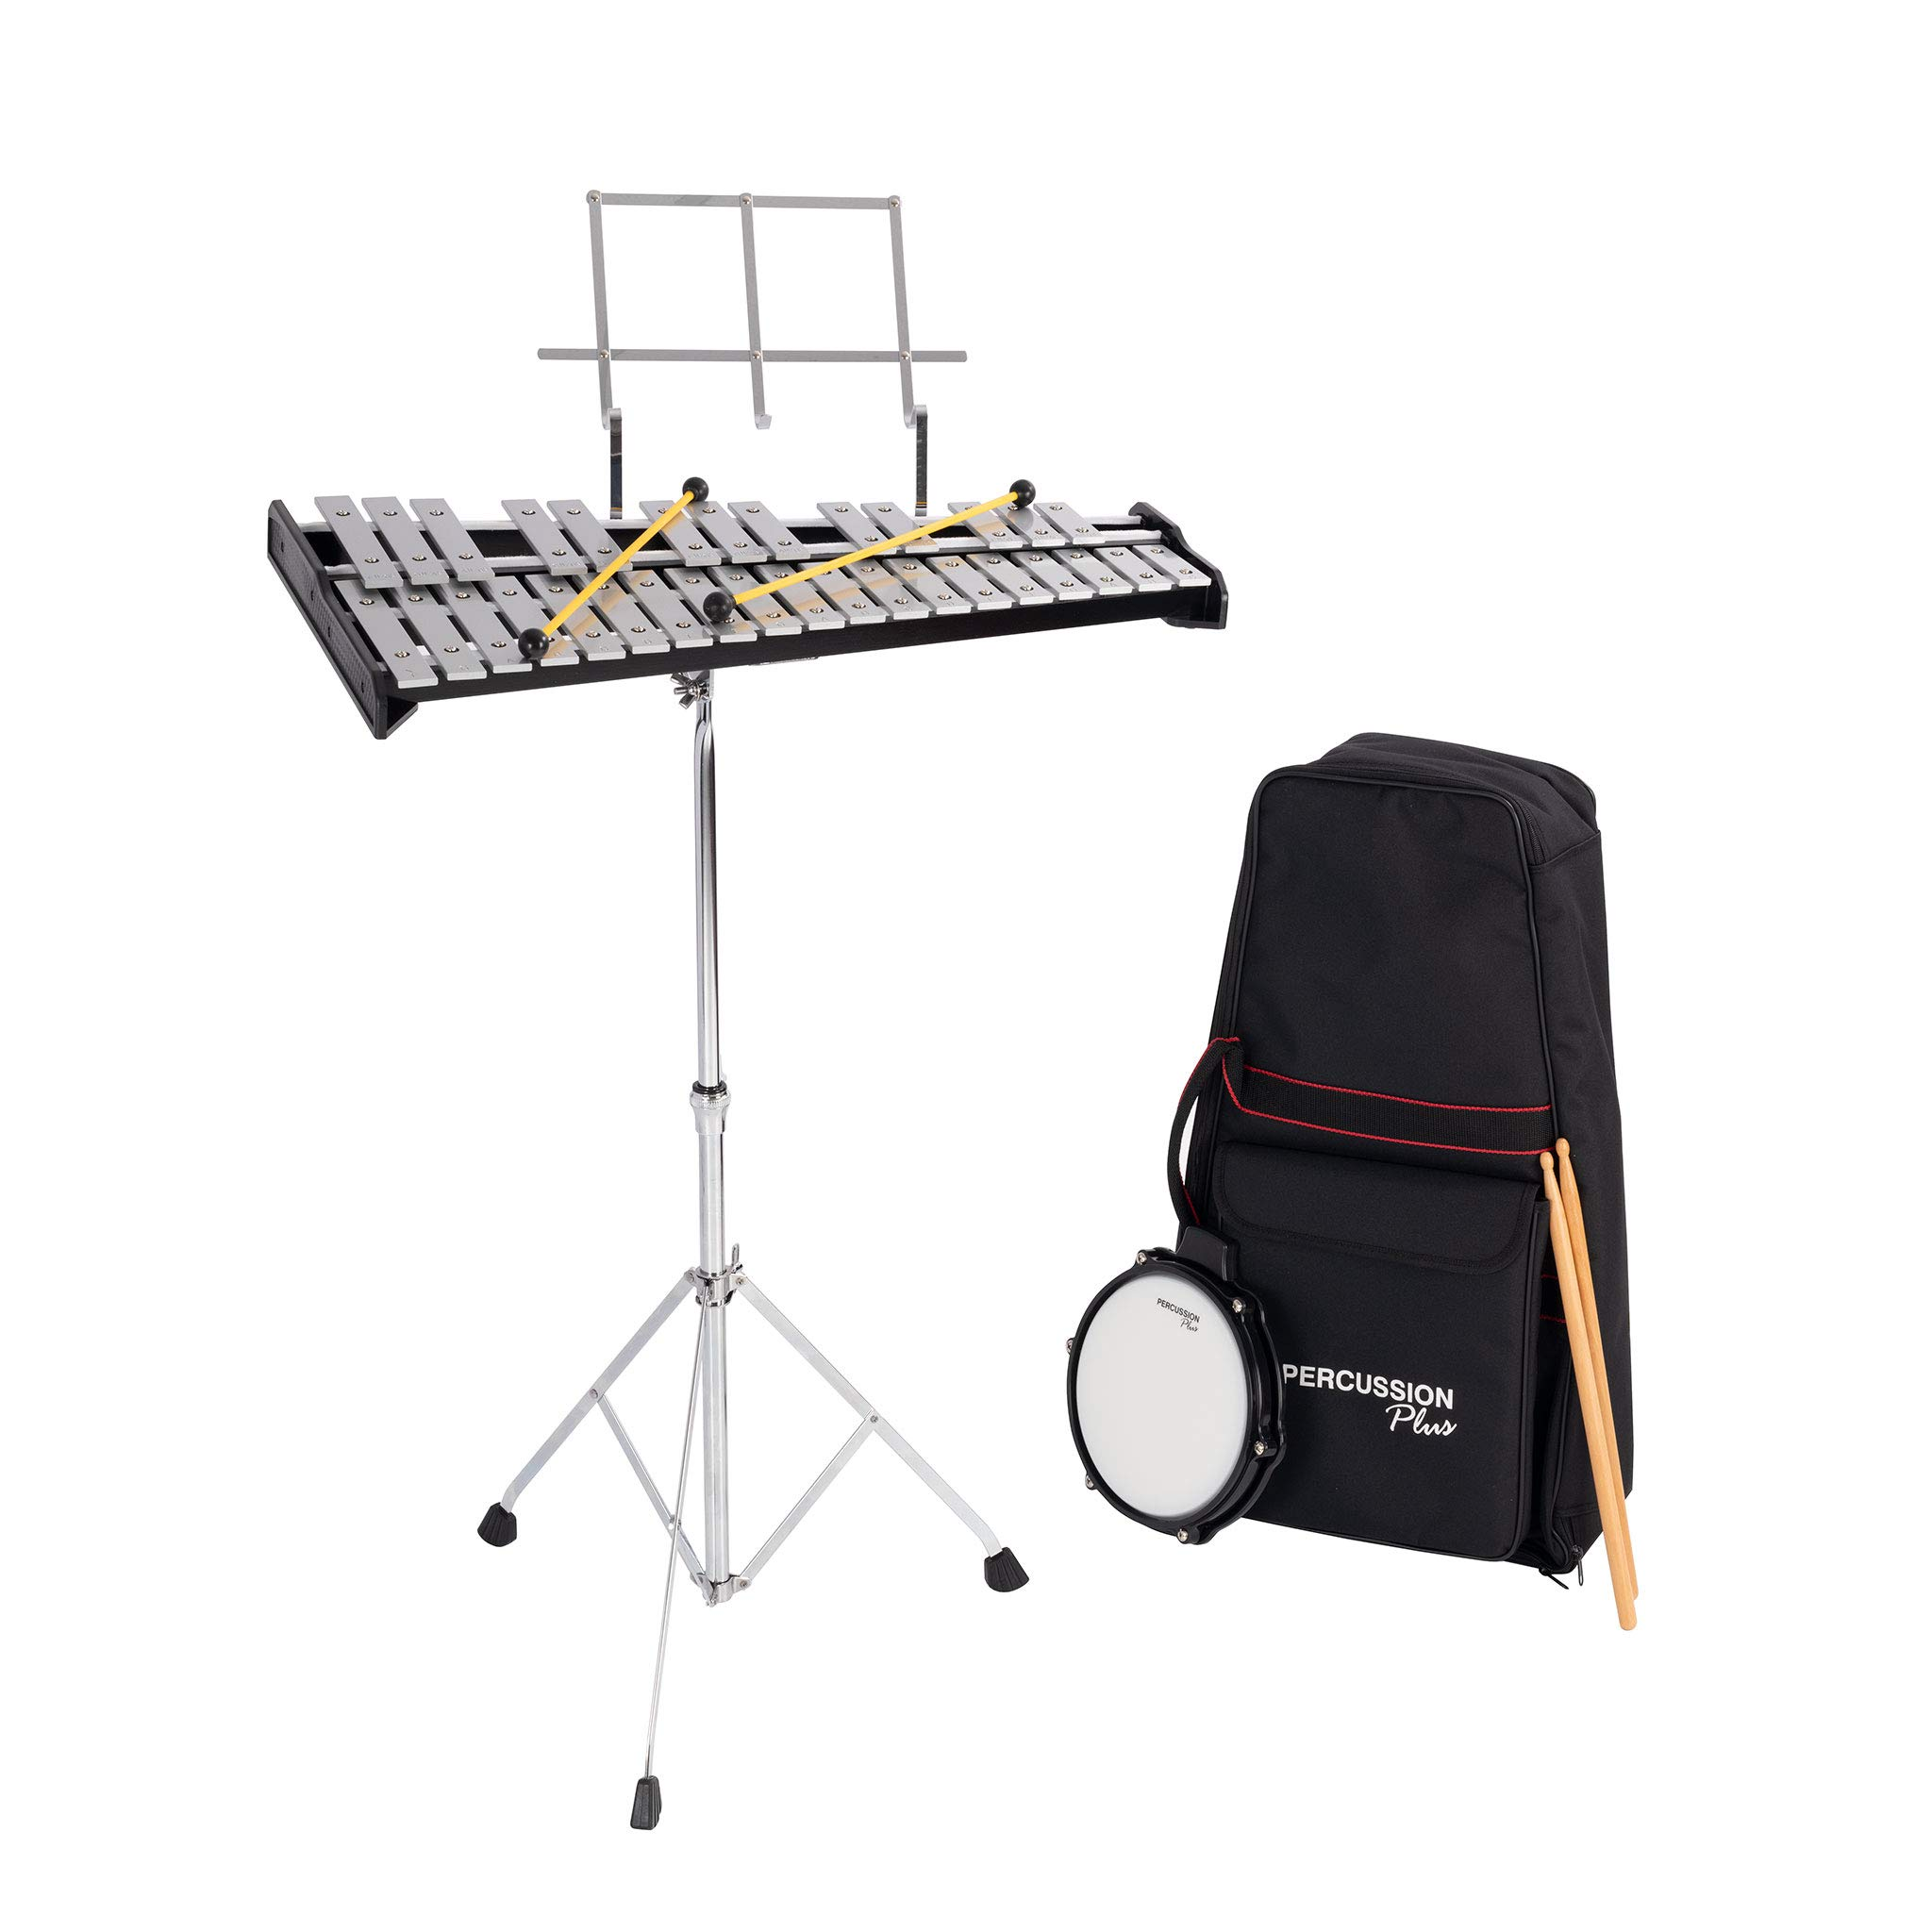 Percussion Plus Glockenspiel Percussion Kit